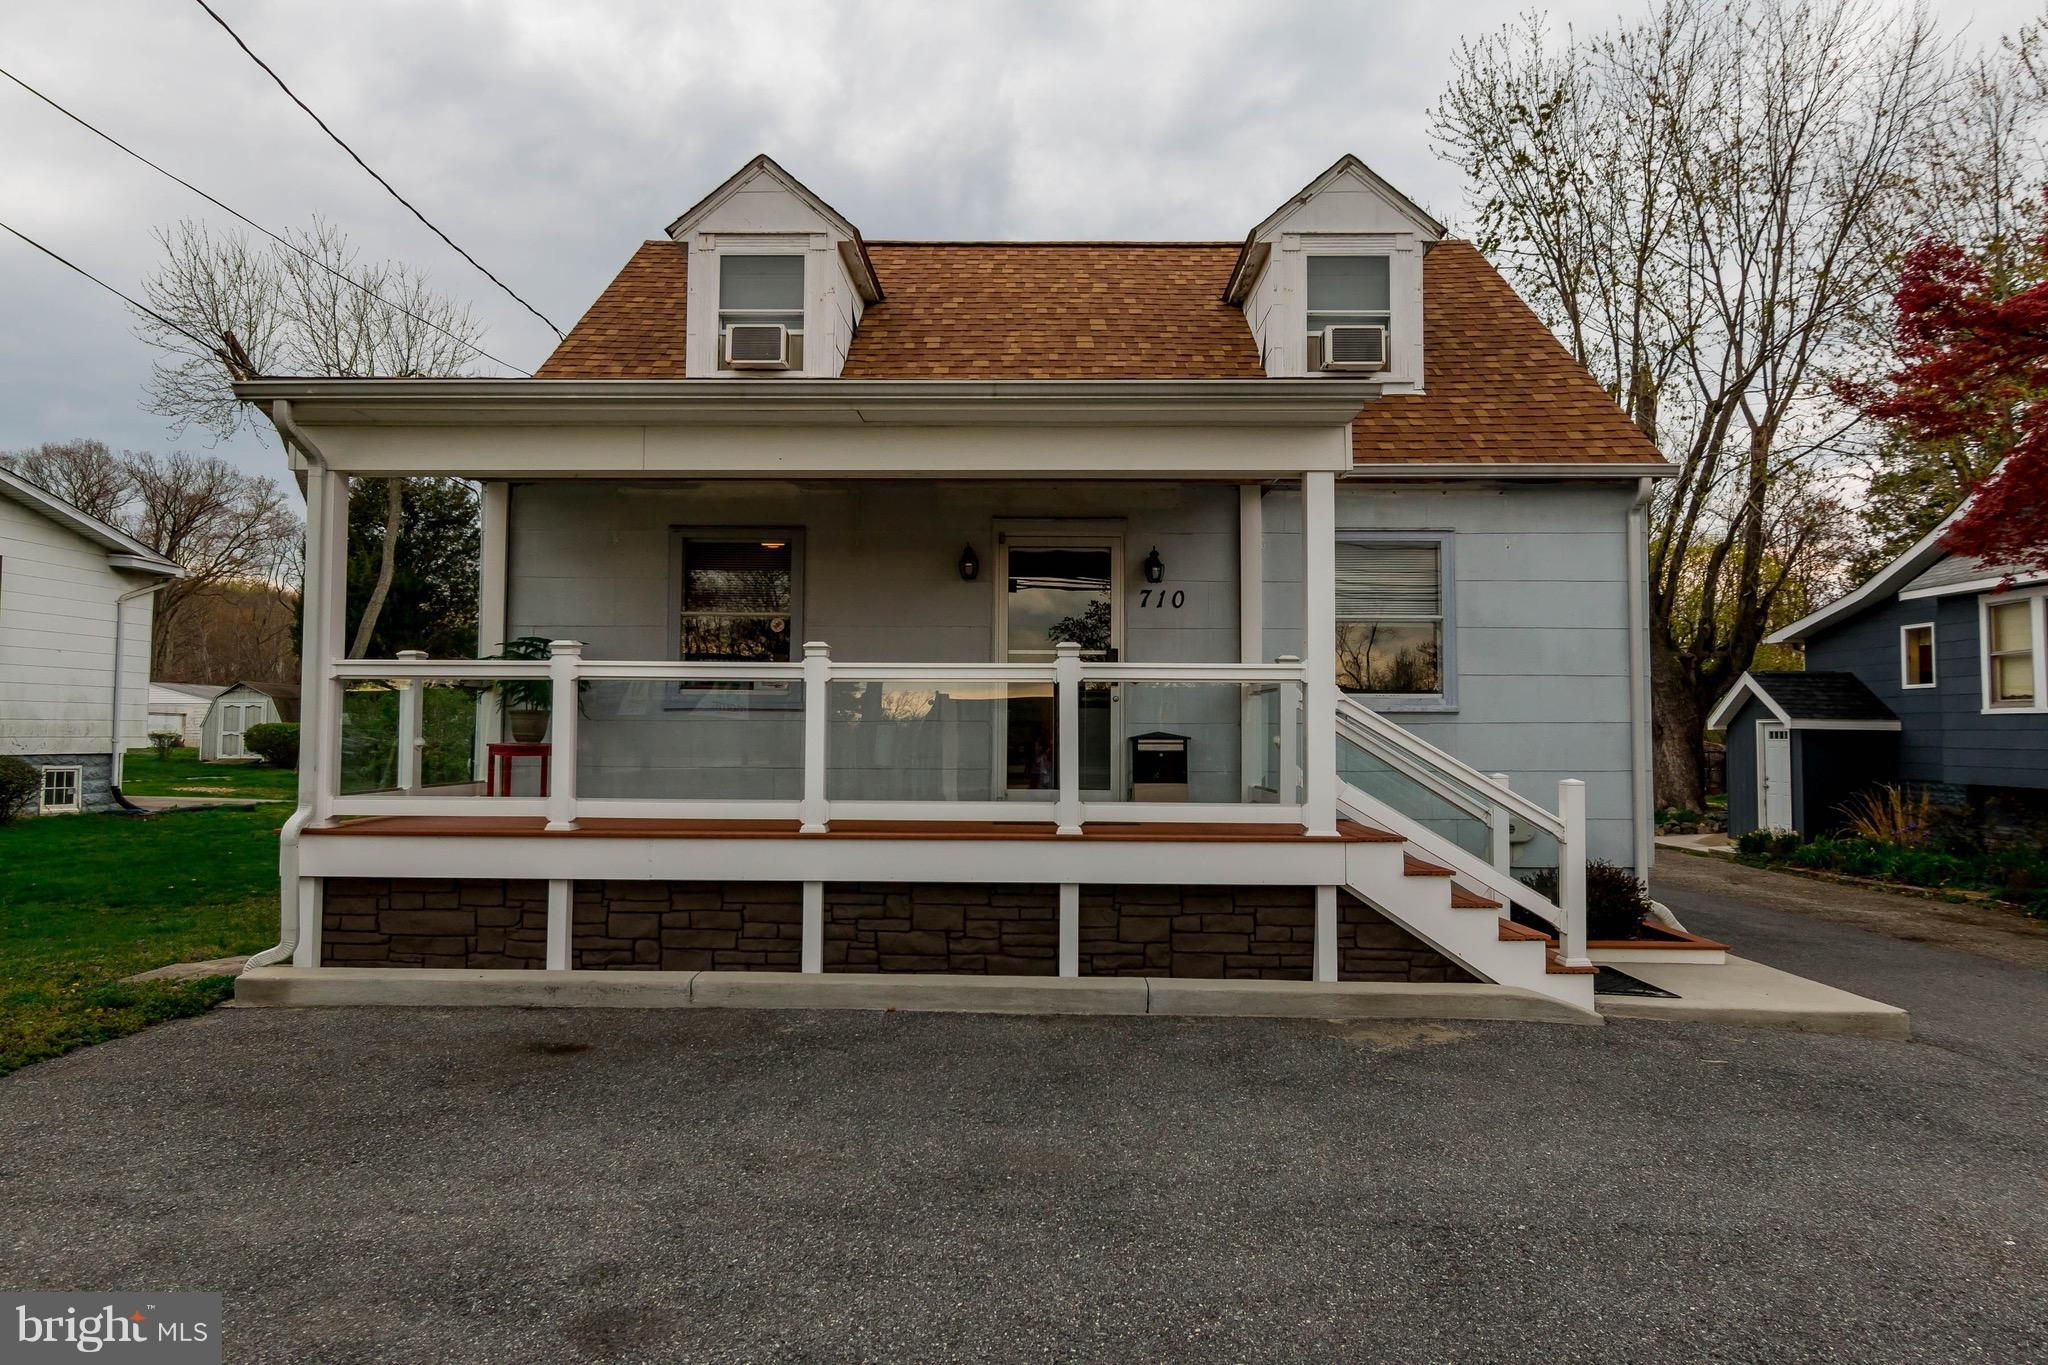 710 HAMMONDS FERRY ROAD, LINTHICUM HEIGHTS, MD 21090